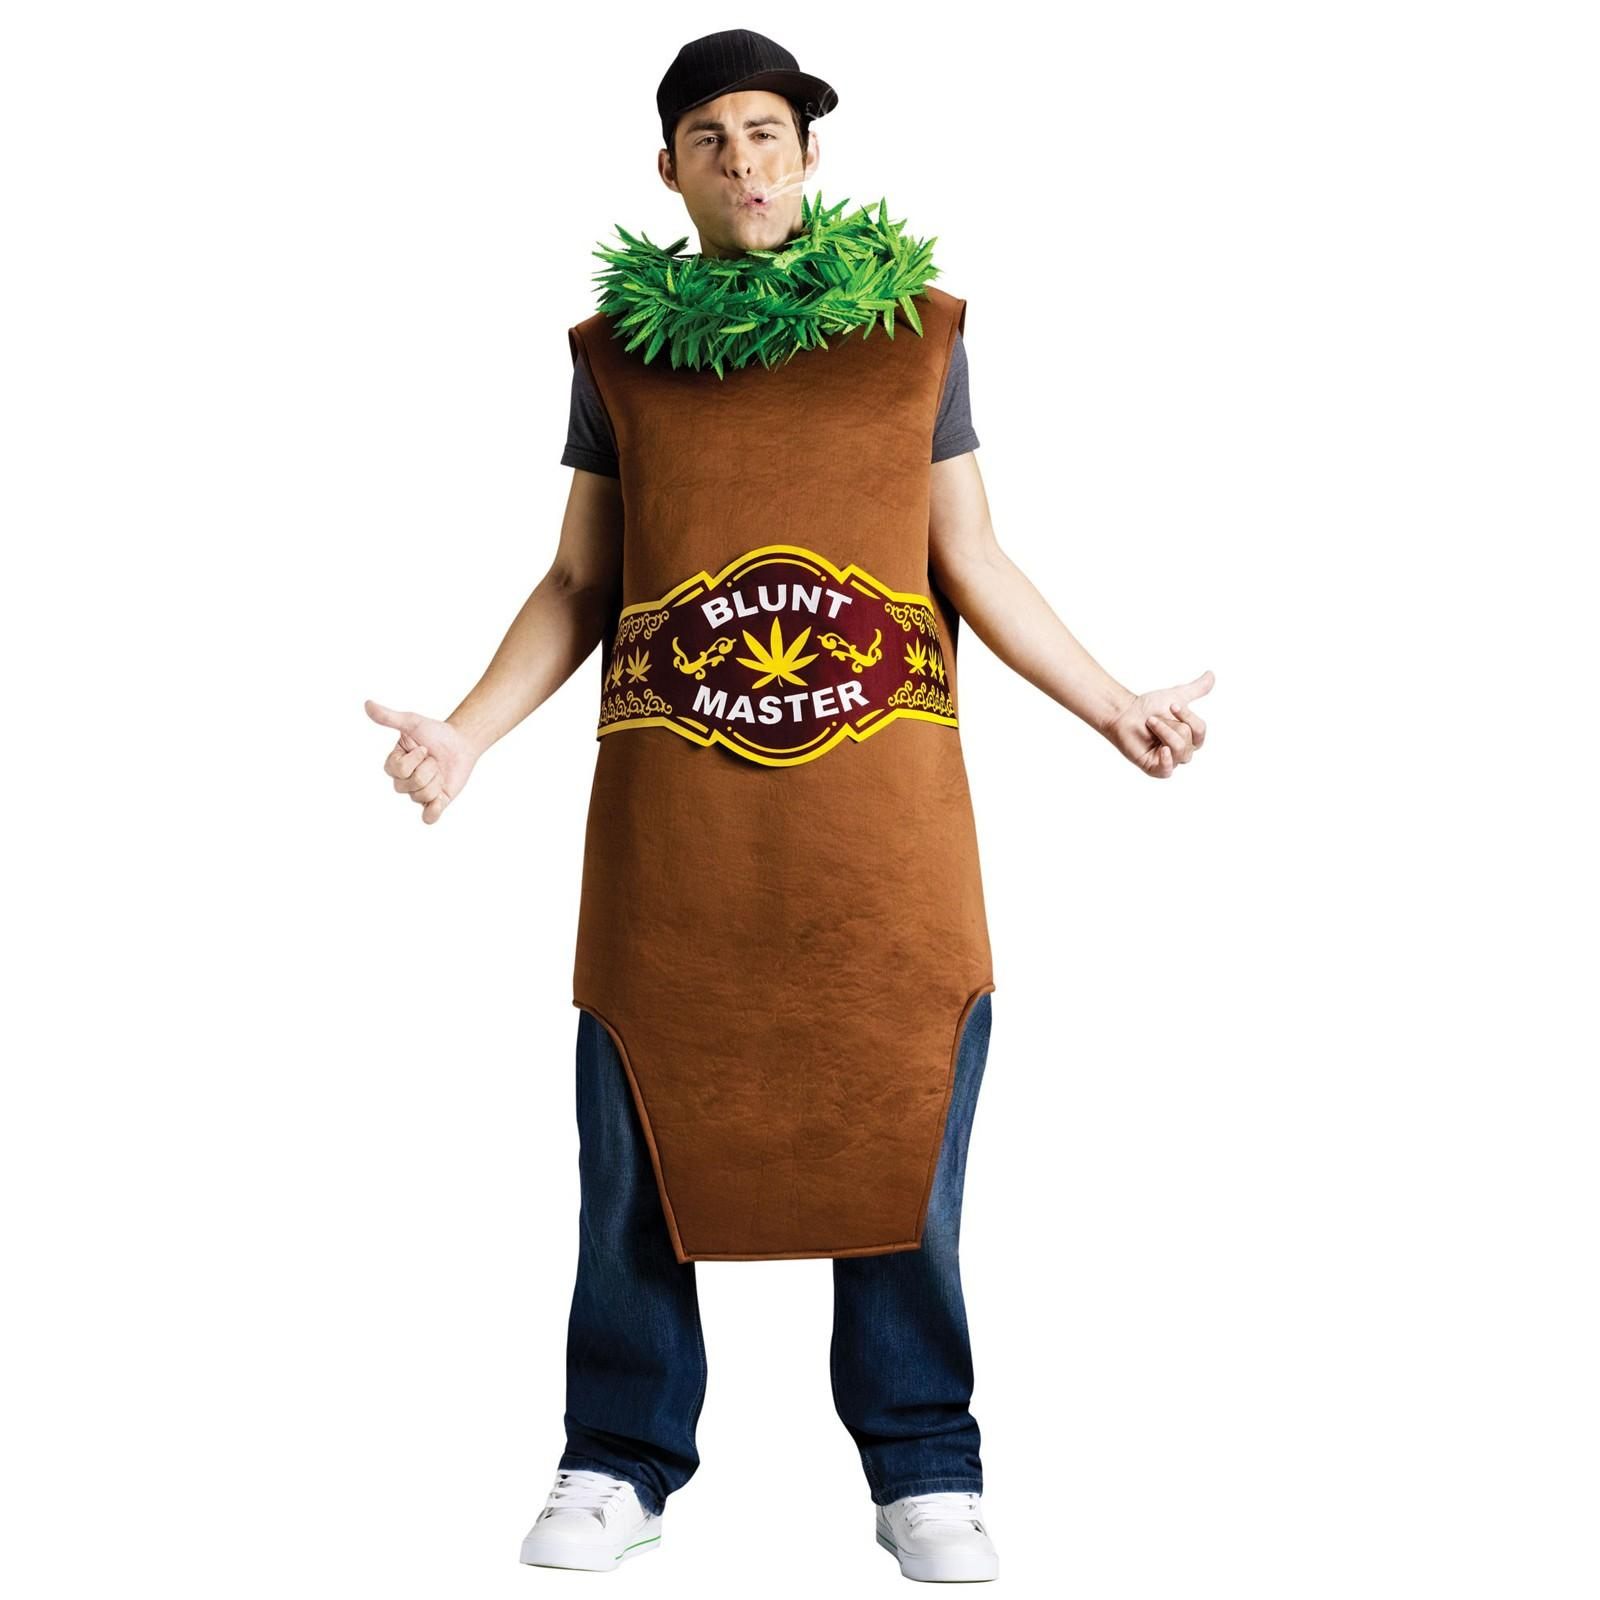 Top 5 Cannabis-Related Halloween Costumes